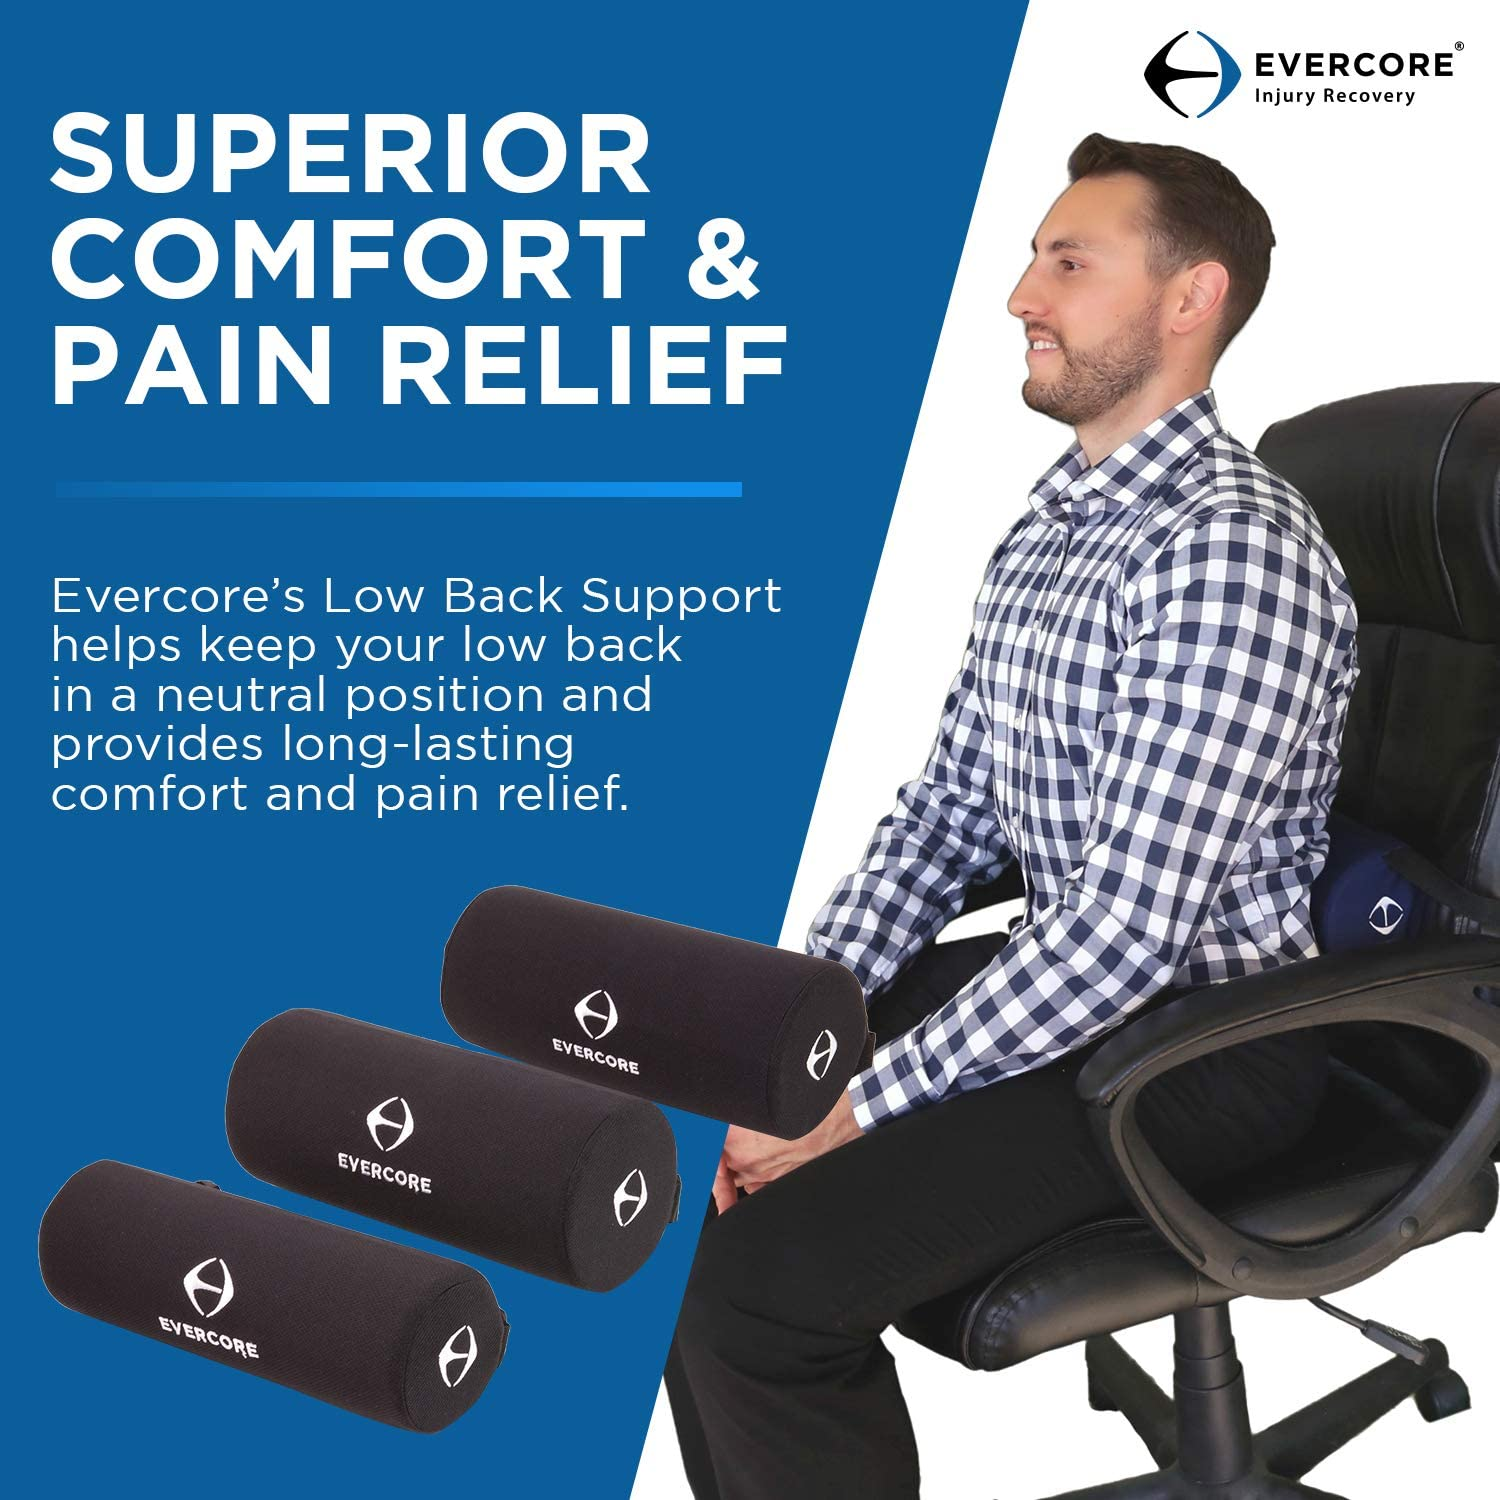 Evercore Low Back Support – Lumbar Roll – Small or Medium – Ergonomic Design, Maintains Shape Overtime, Helps Improve Posture